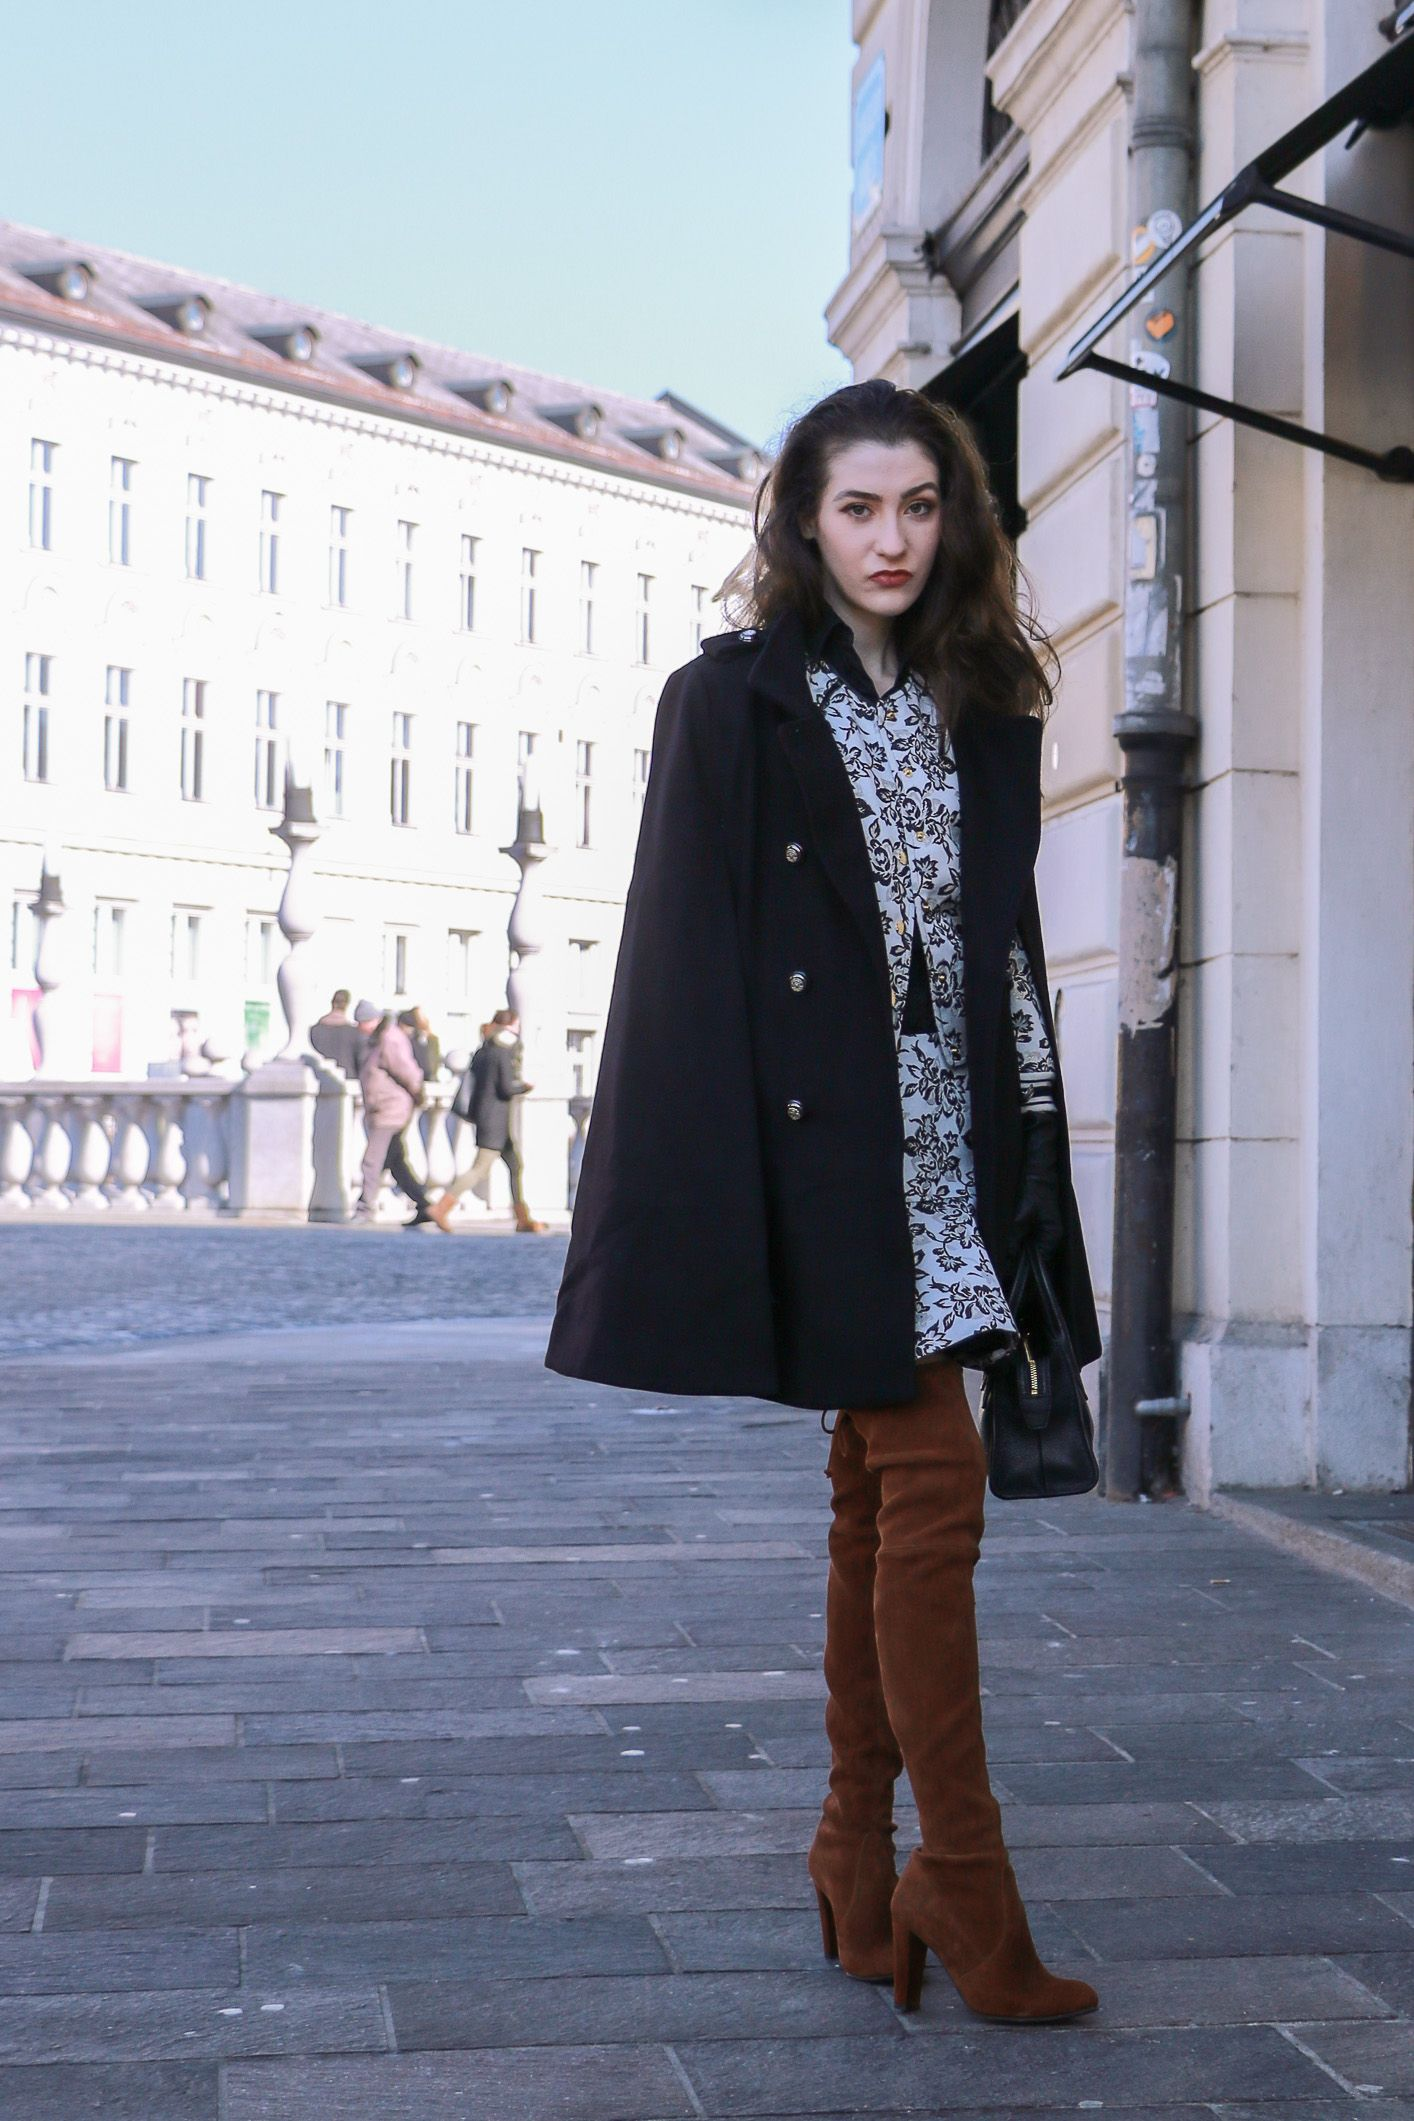 751b585d2 Fashion blogger Veronika Lipar of Brunette From Wall Street sharing what to  wear to the fashion week